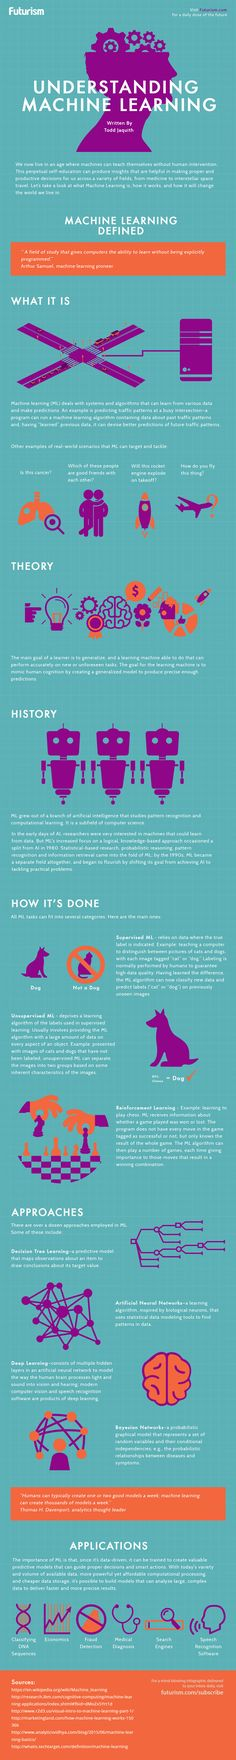 Machine can now teach themselves without human intervention. Here's how it works, and what it means for society.   http://futurism.com/images/understanding-machine-learning-infographic/?utm_campaign=coschedule&utm_source=pinterest&utm_medium=Futurism&utm_content=Understanding%20Machine%20Learning%20%5BInfographic%5D